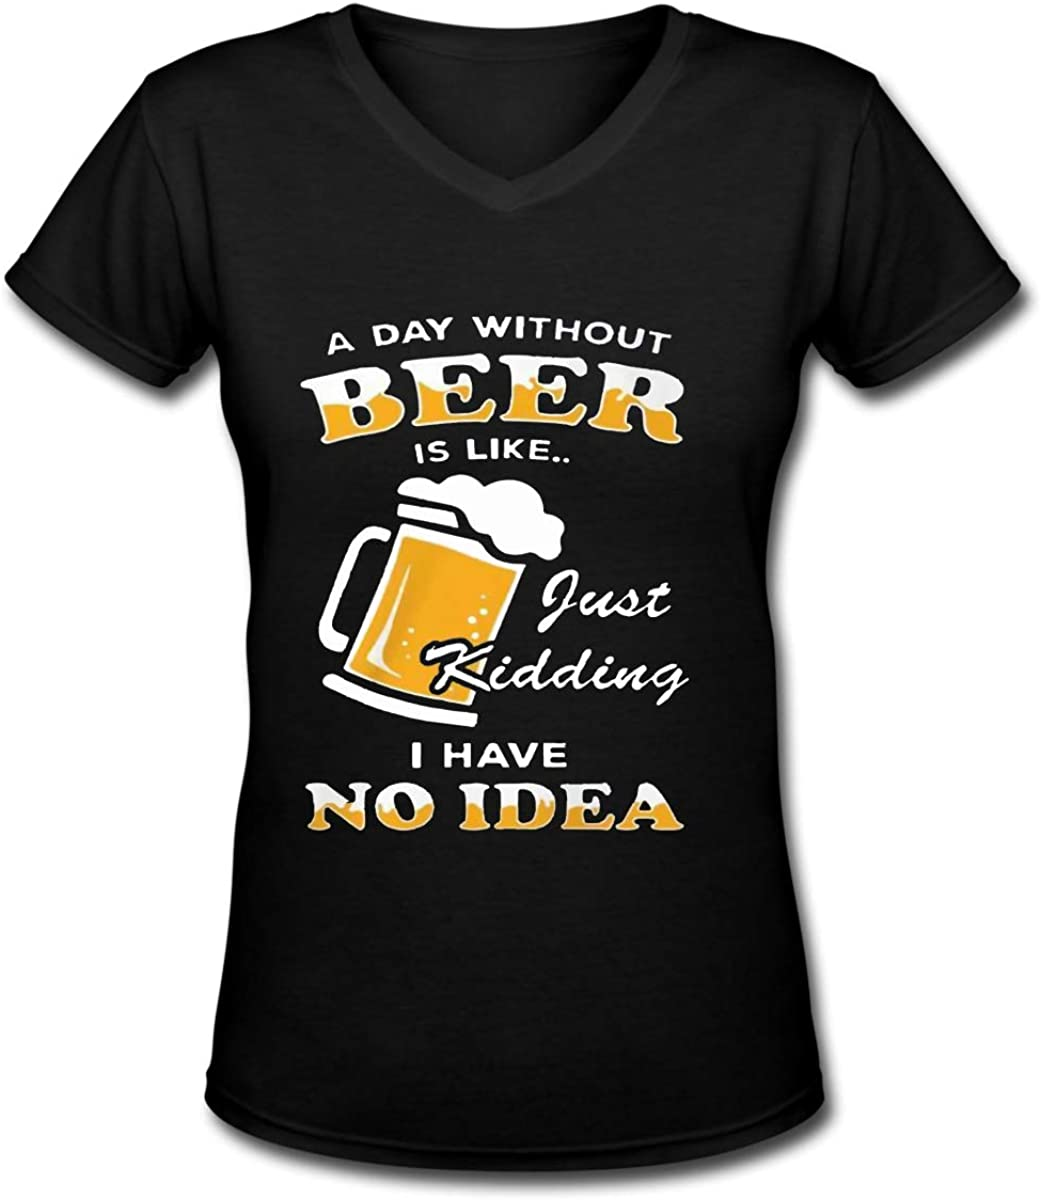 Hbbcx A Day Without Beer Women V-Neck Tee Essential Crew Neck V Neck T-Shirt